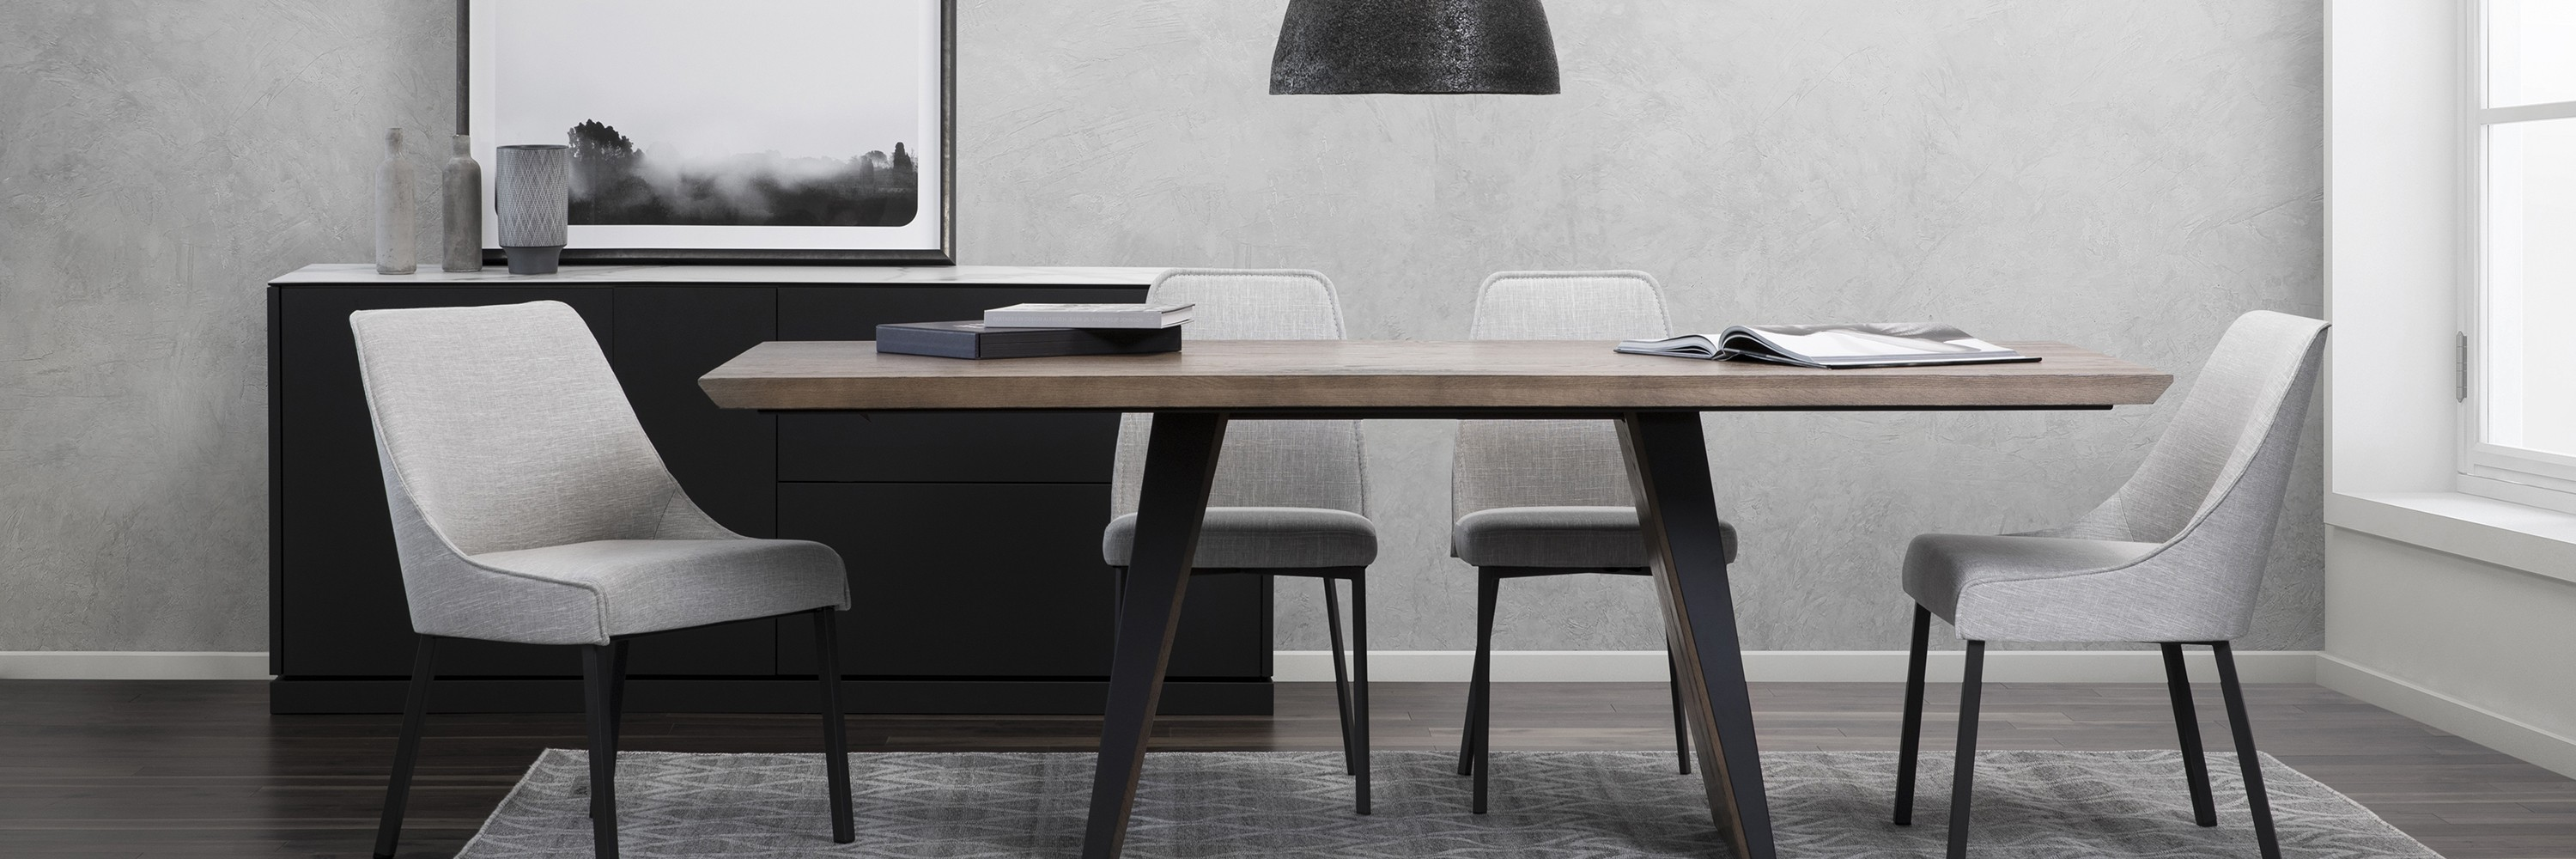 Super Dining Room Furniture Table Chair Maison Corbeil Download Free Architecture Designs Embacsunscenecom